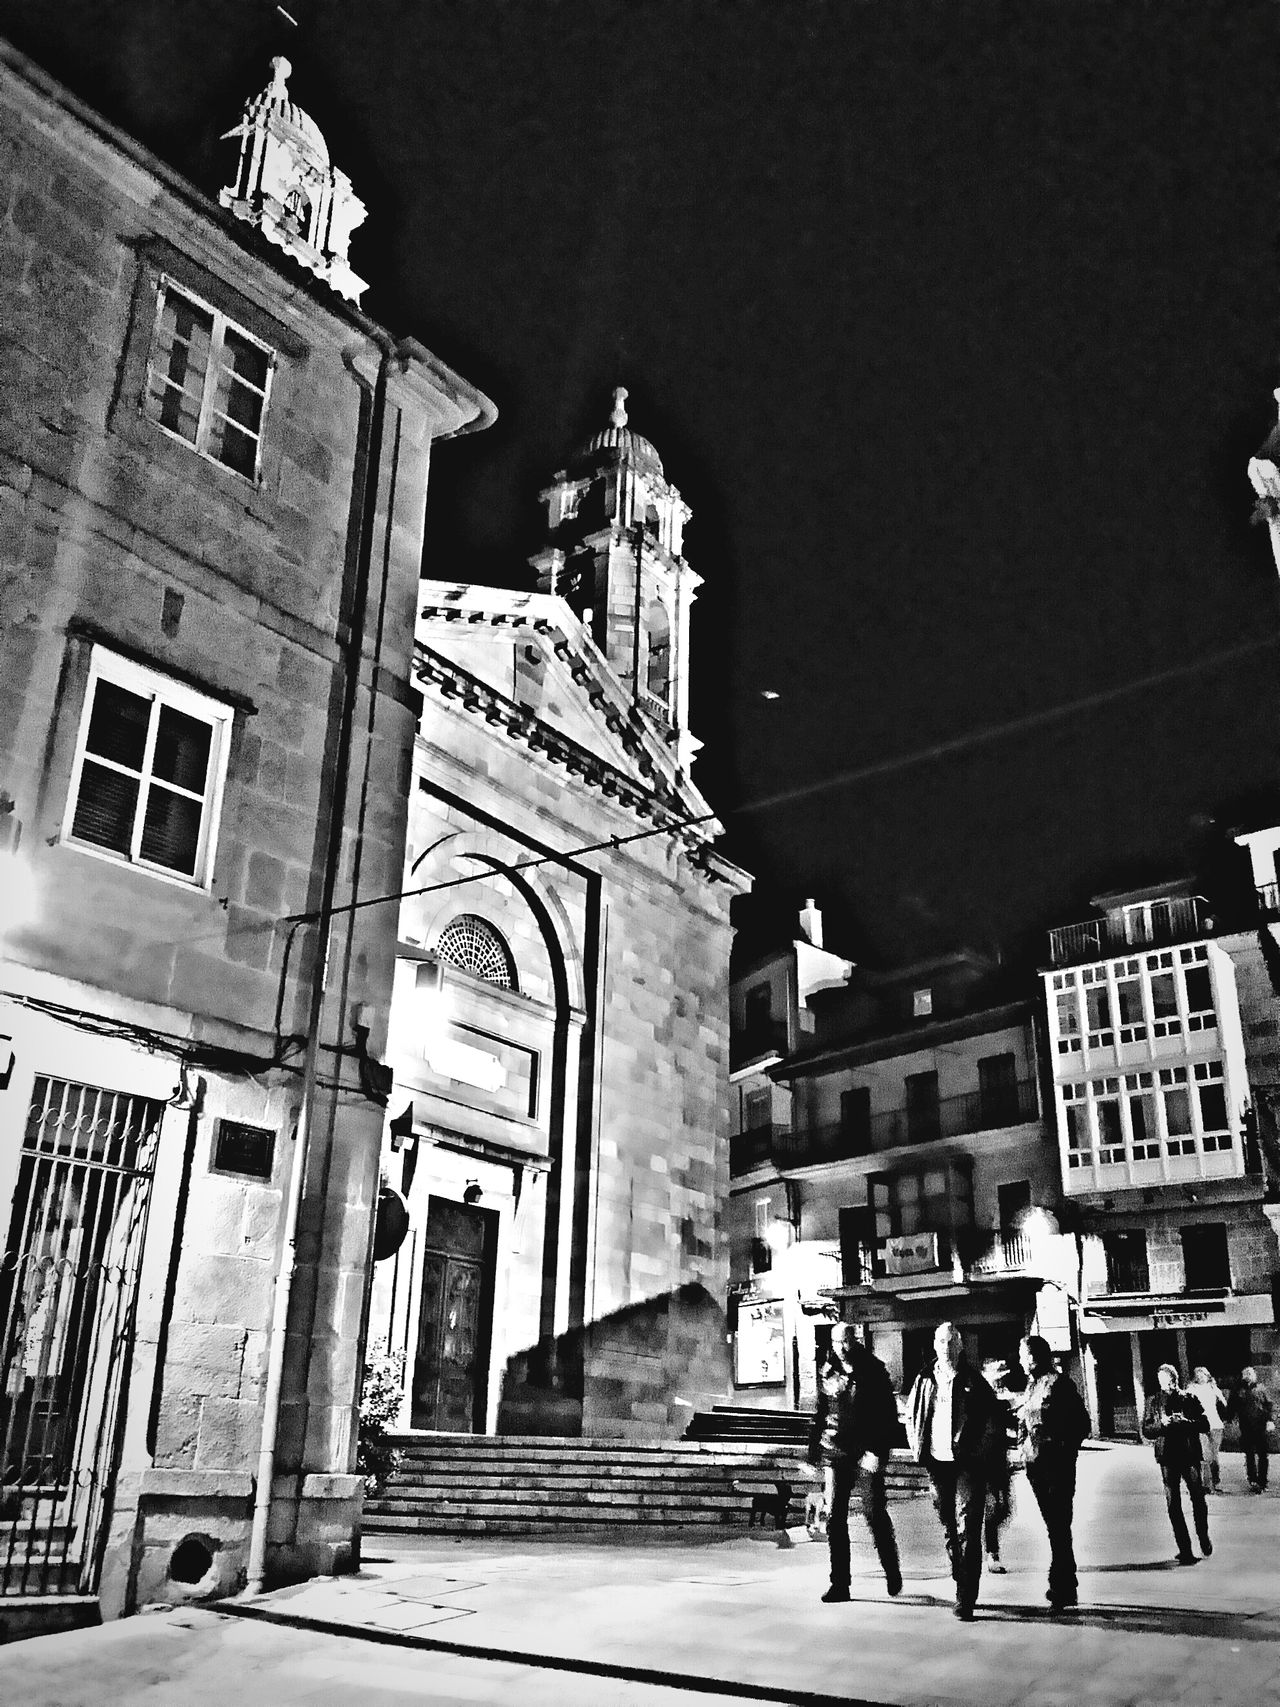 Vigo, old town, yerterday midnight 🌃🌛🌛 Street Life for the Bnw_friday_eyeemchallenge Snapshots Of Life Malephotographerofthemonth HDR Architecture Blackandwhite Monochrome Streetphotography EyeEm Best Shots